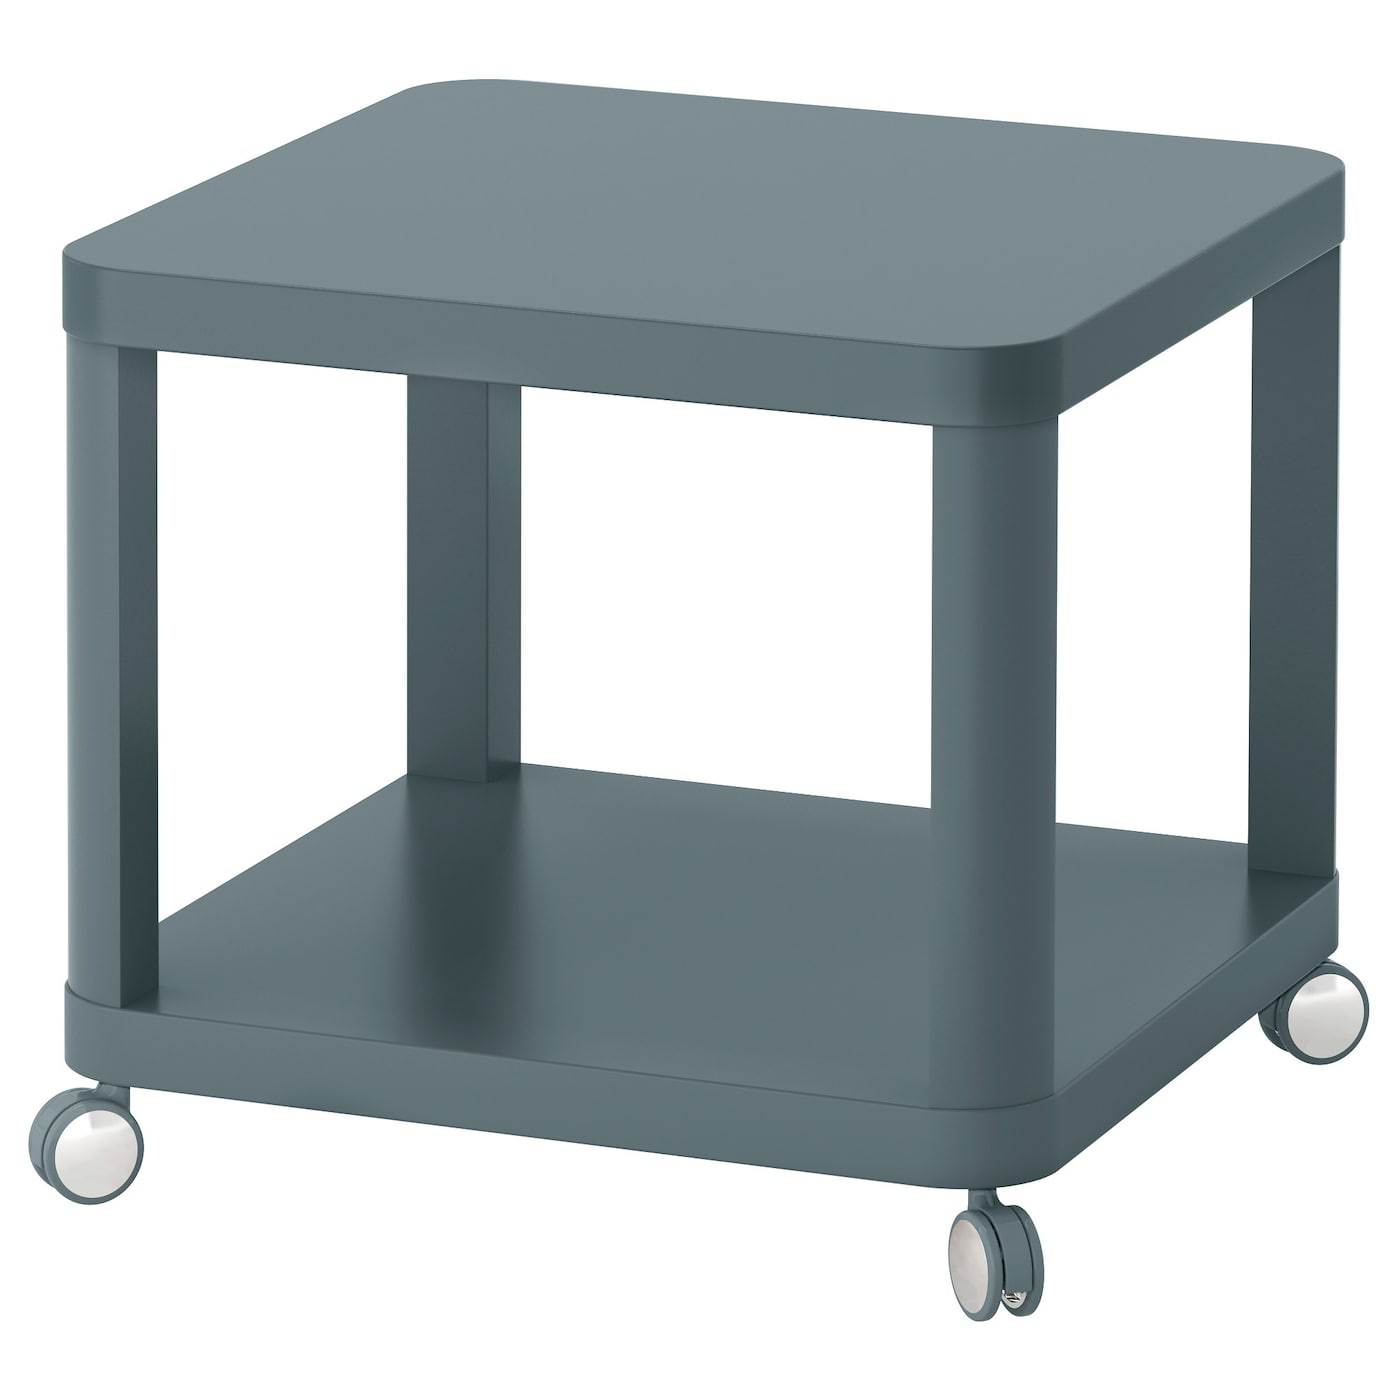 Tingby side table on castors turquoise 50x50 cm ikea Ikea coffee tables and end tables